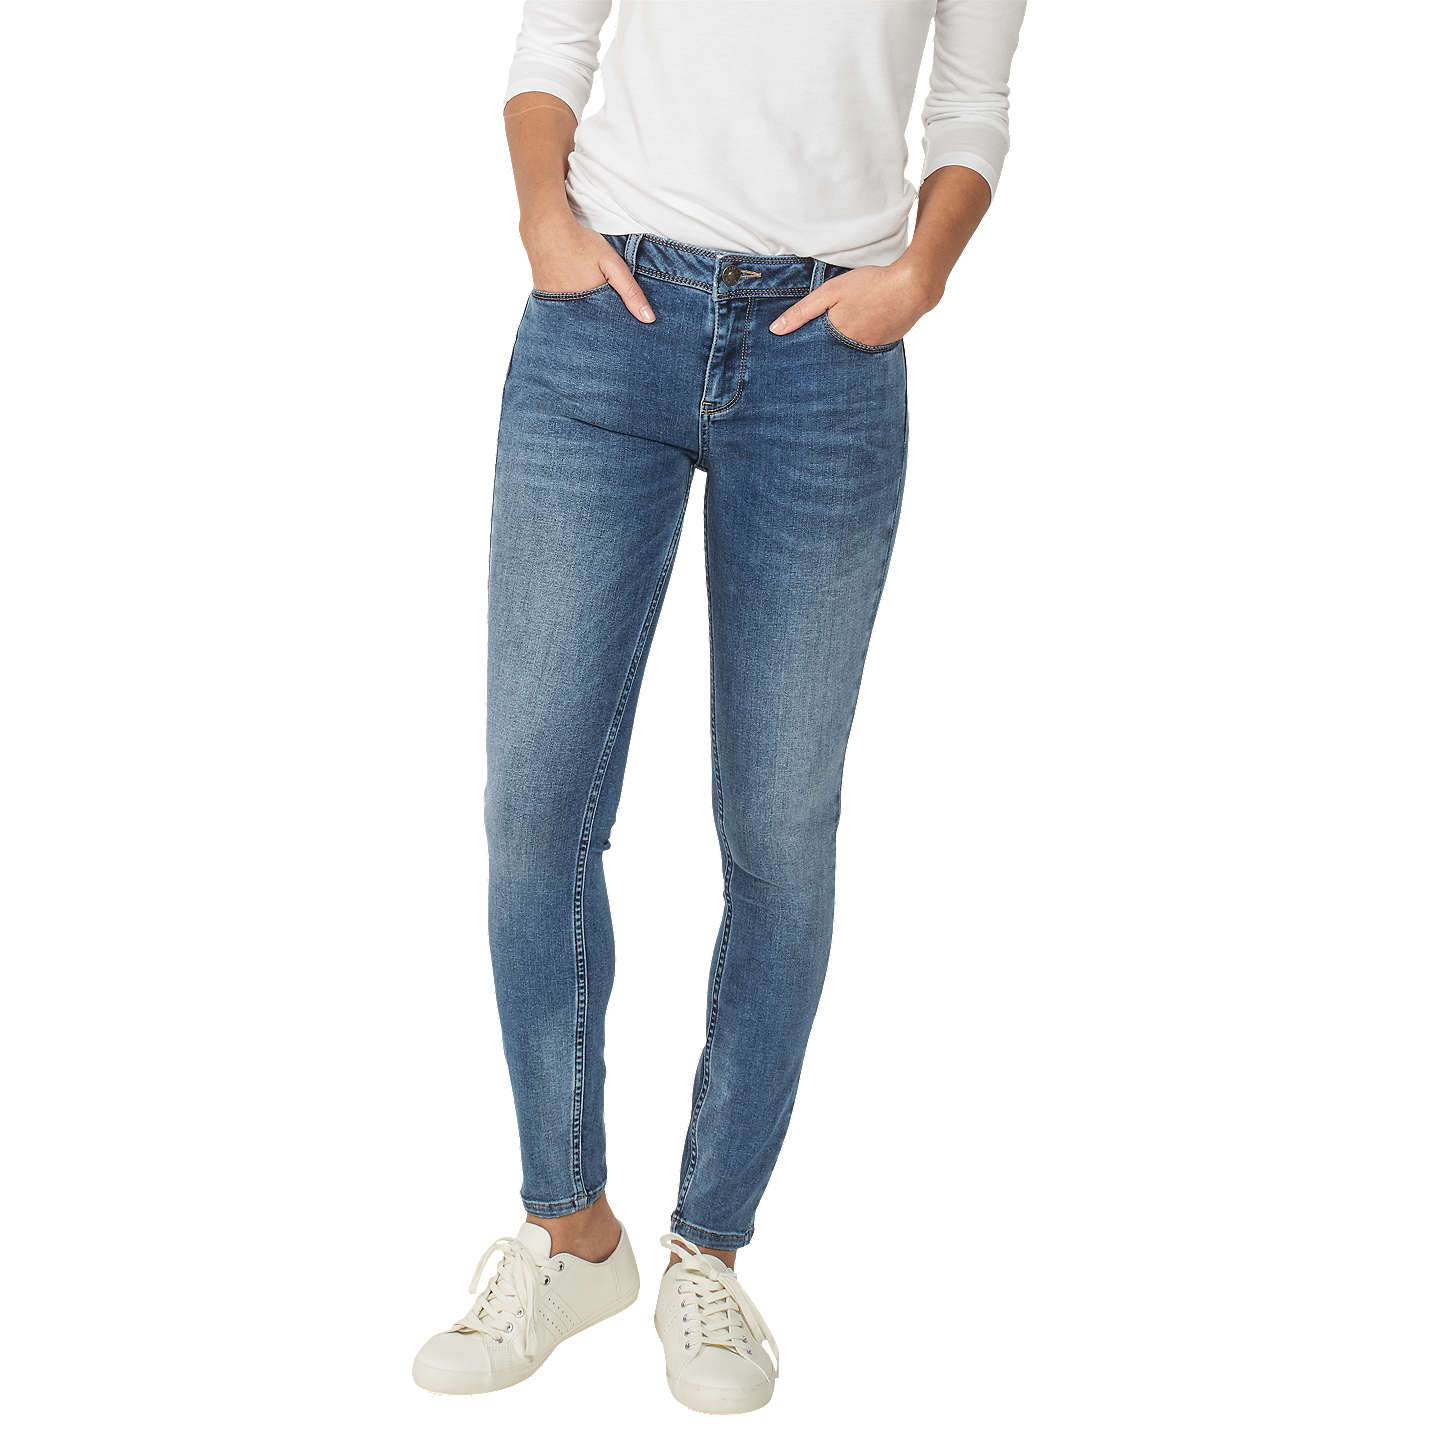 How Much Online Womens Mid Wash Jegging Skinny Jeans Fat Face Outlet 2018 Unisex Cheap Price Store aS6ddI1